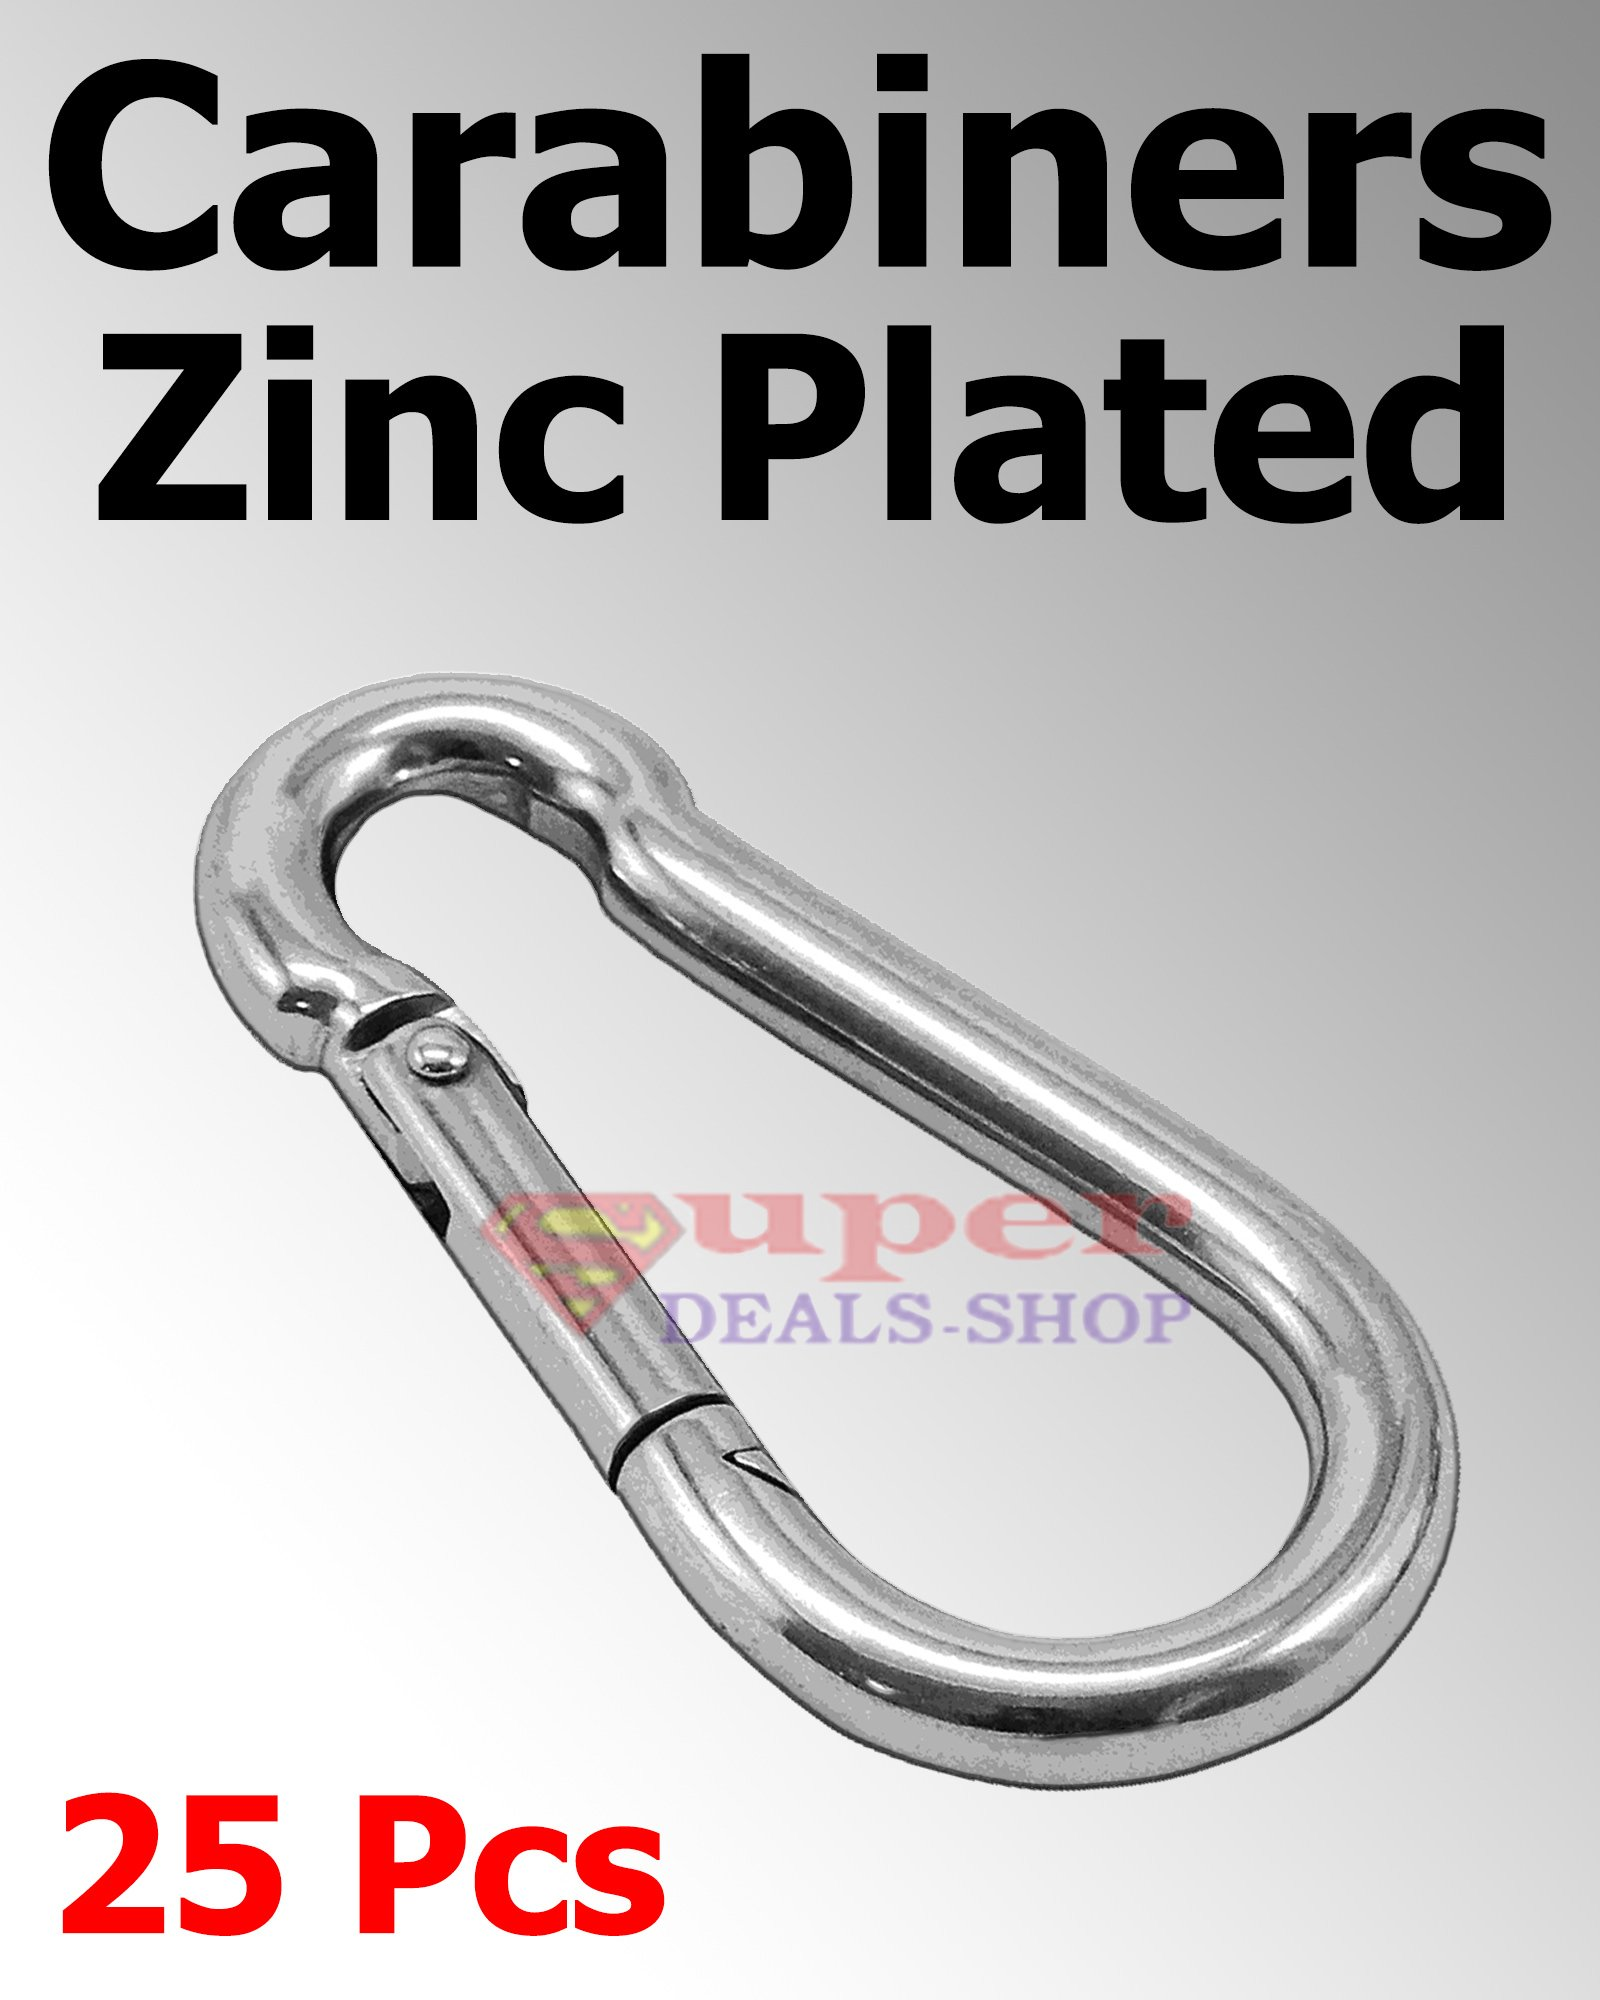 25 Pcs 3/16 Snap Hooks Carabiners Zinc Plated Spring Hooks Heavy Duty Choose Size/Quantity In Listing Made in USA Super-Deals-Shop